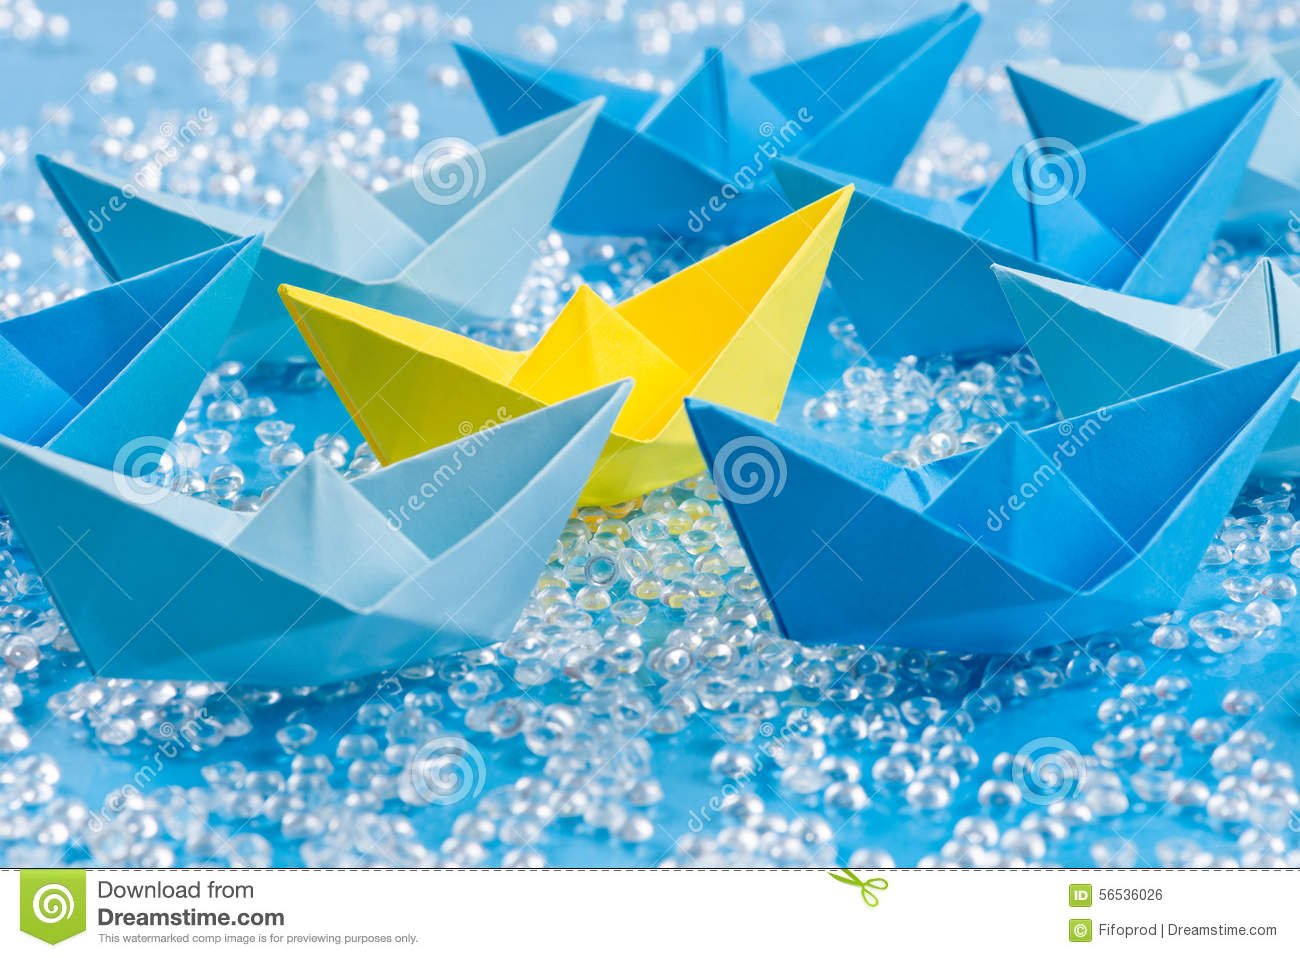 Fleet of blue Origami paper ships on blue water like background surrounding a yellow one